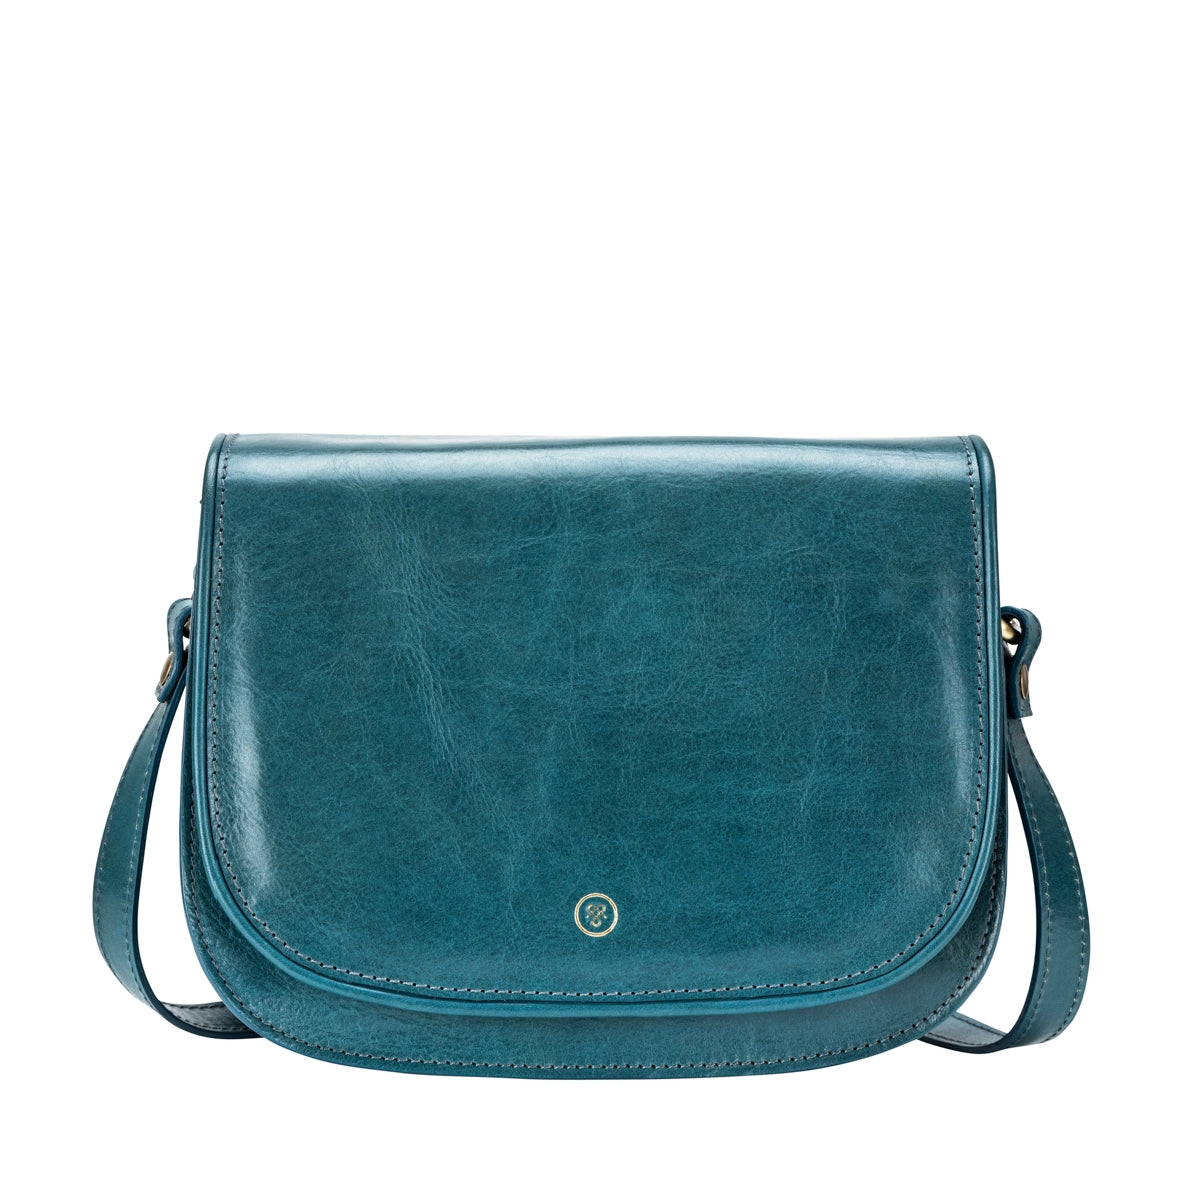 Image 1 of the 'MedollaM' Petrol Leather Women's Saddle Bag